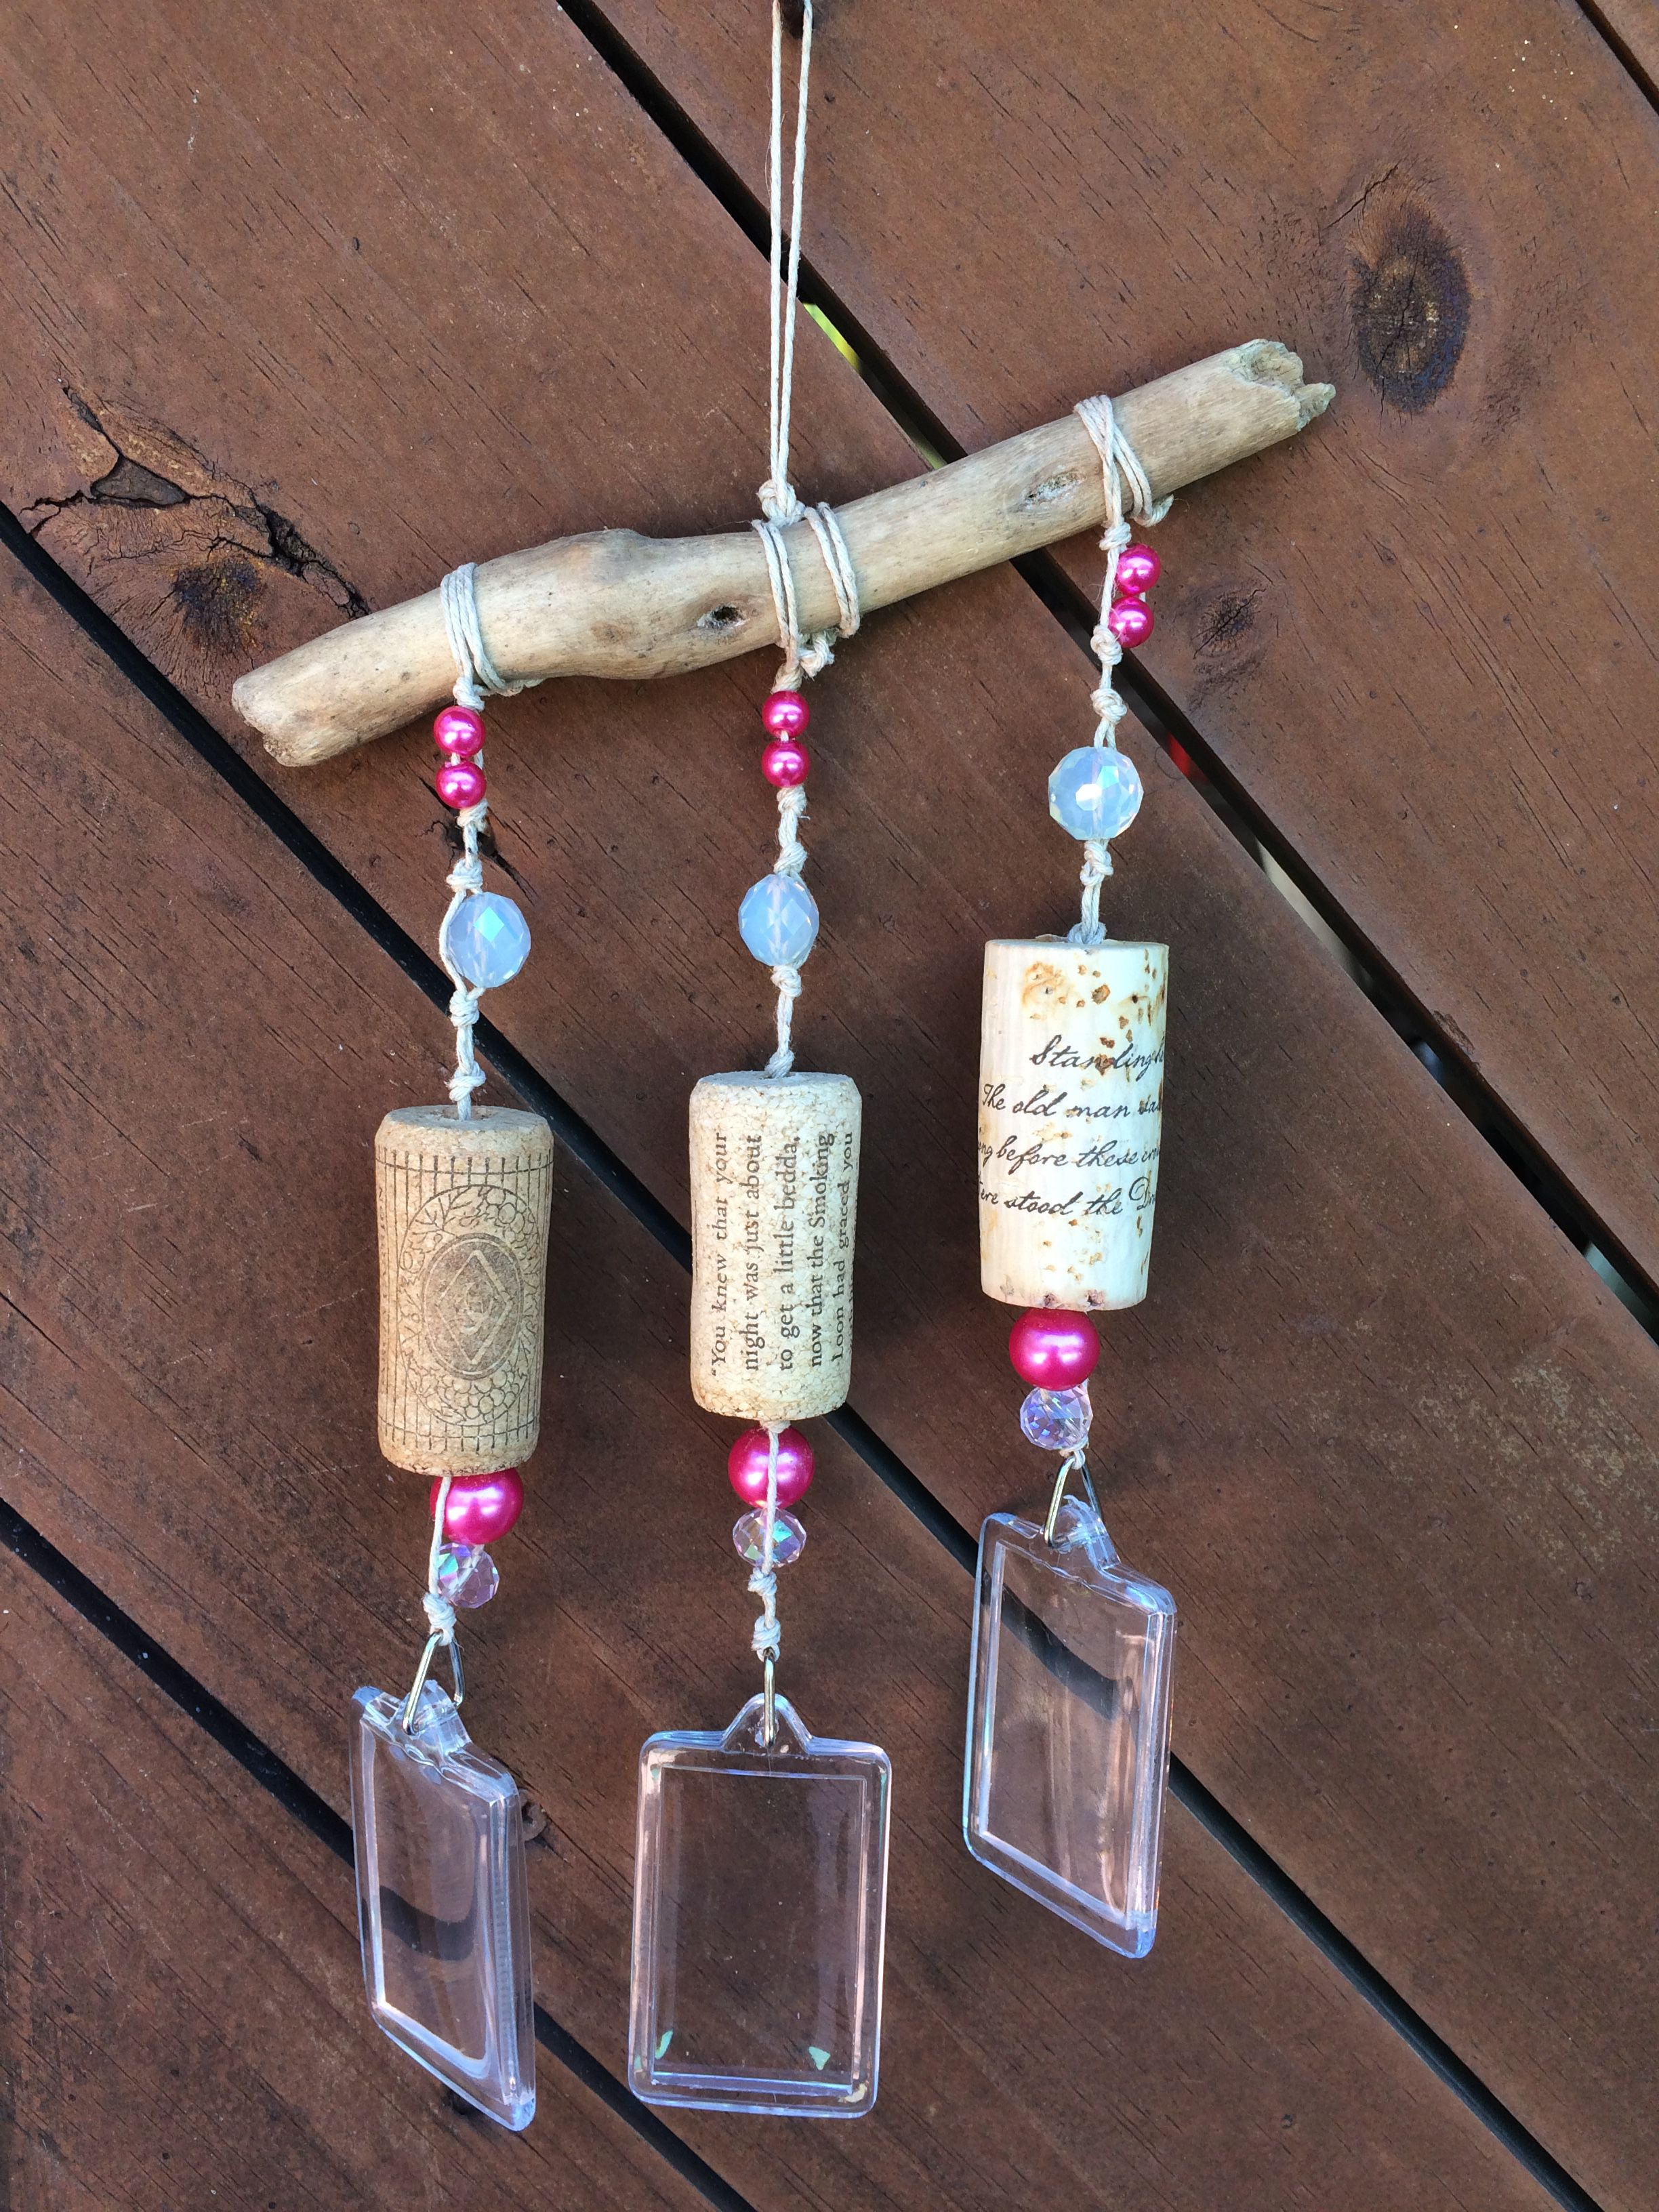 boho decor pearls photo wine frame cork outdoor windshime driftwood